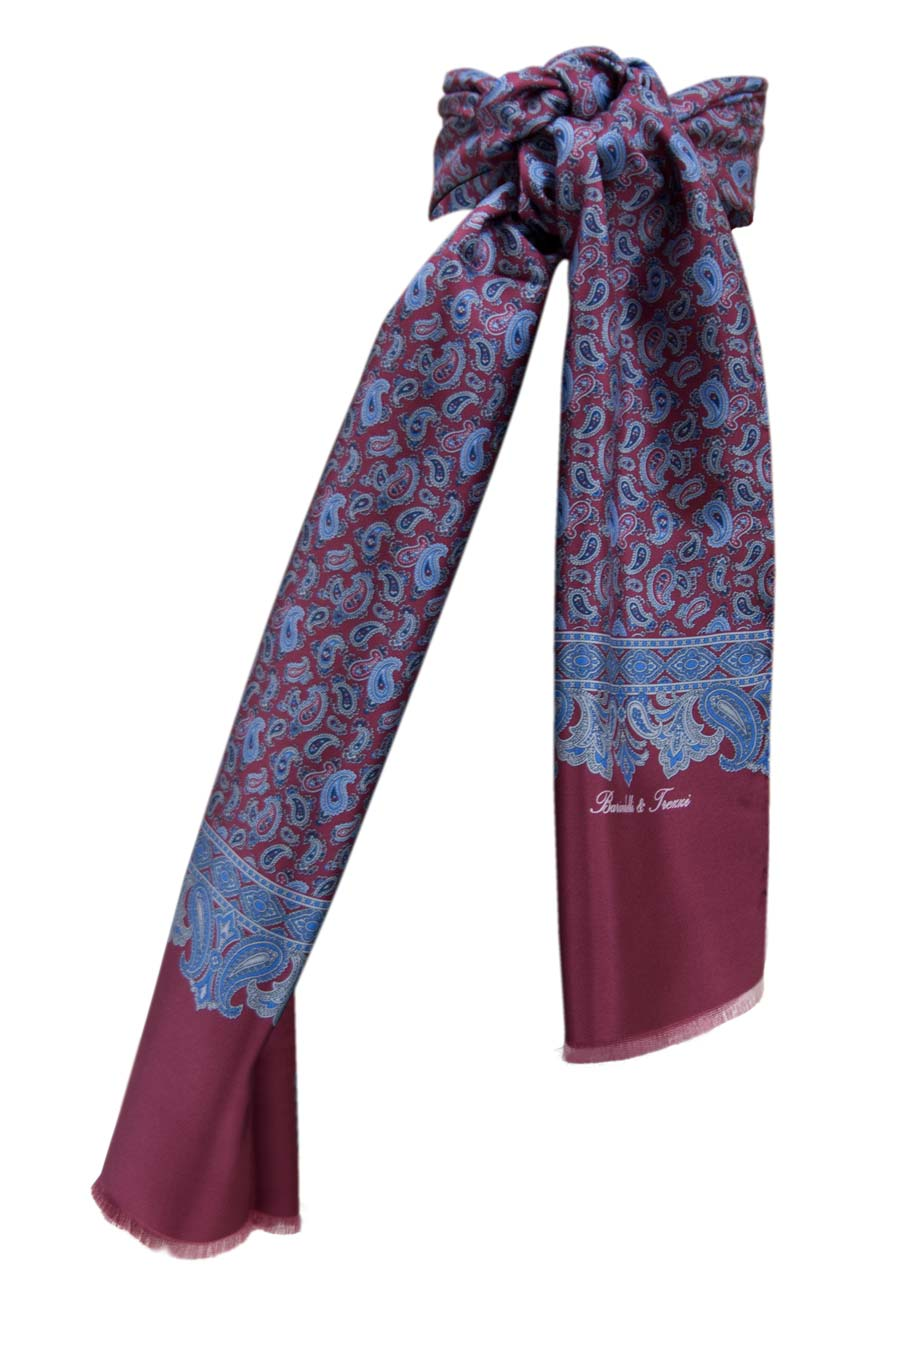 Men's silk scarf - Bordeaux cashmere fantasy